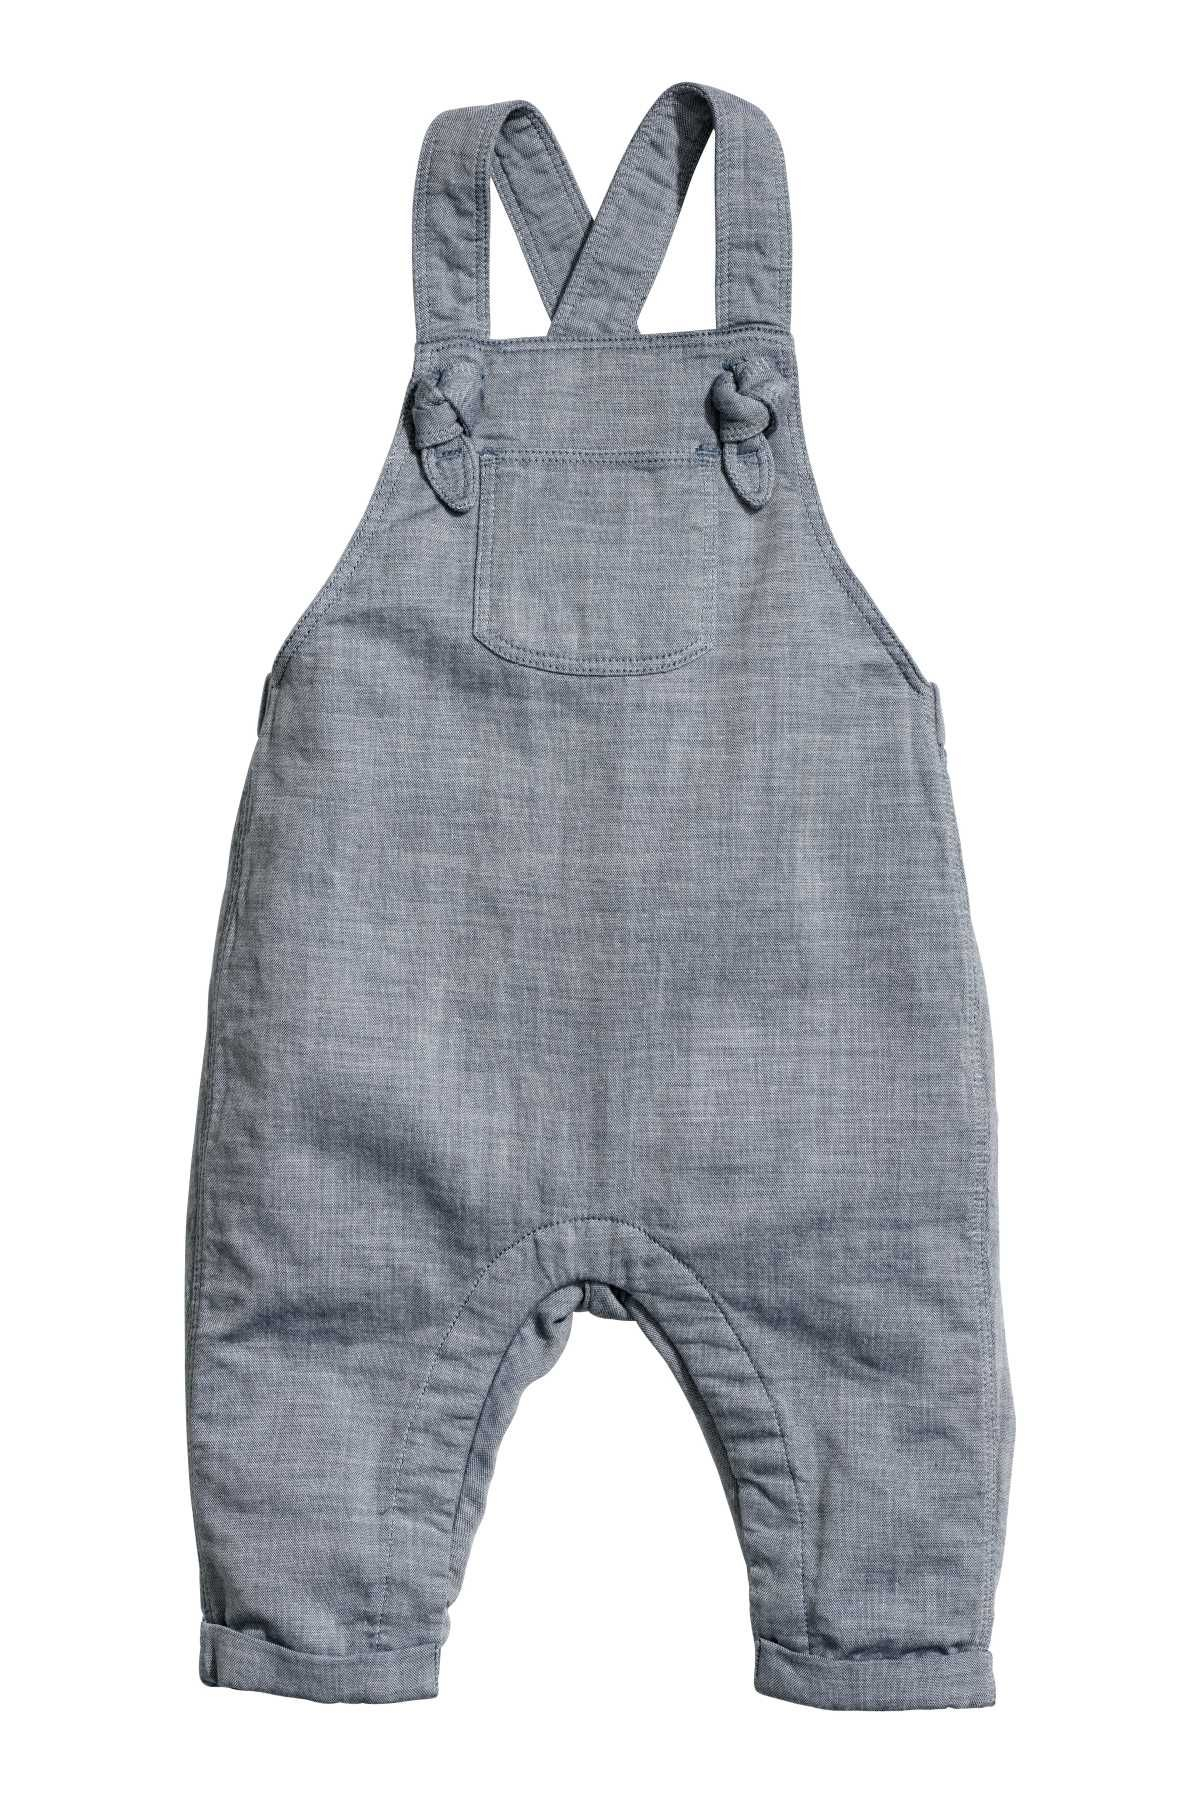 7c1d5df6f Blue. BABY EXCLUSIVE CONSCIOUS. Bib overalls in woven organic cotton ...